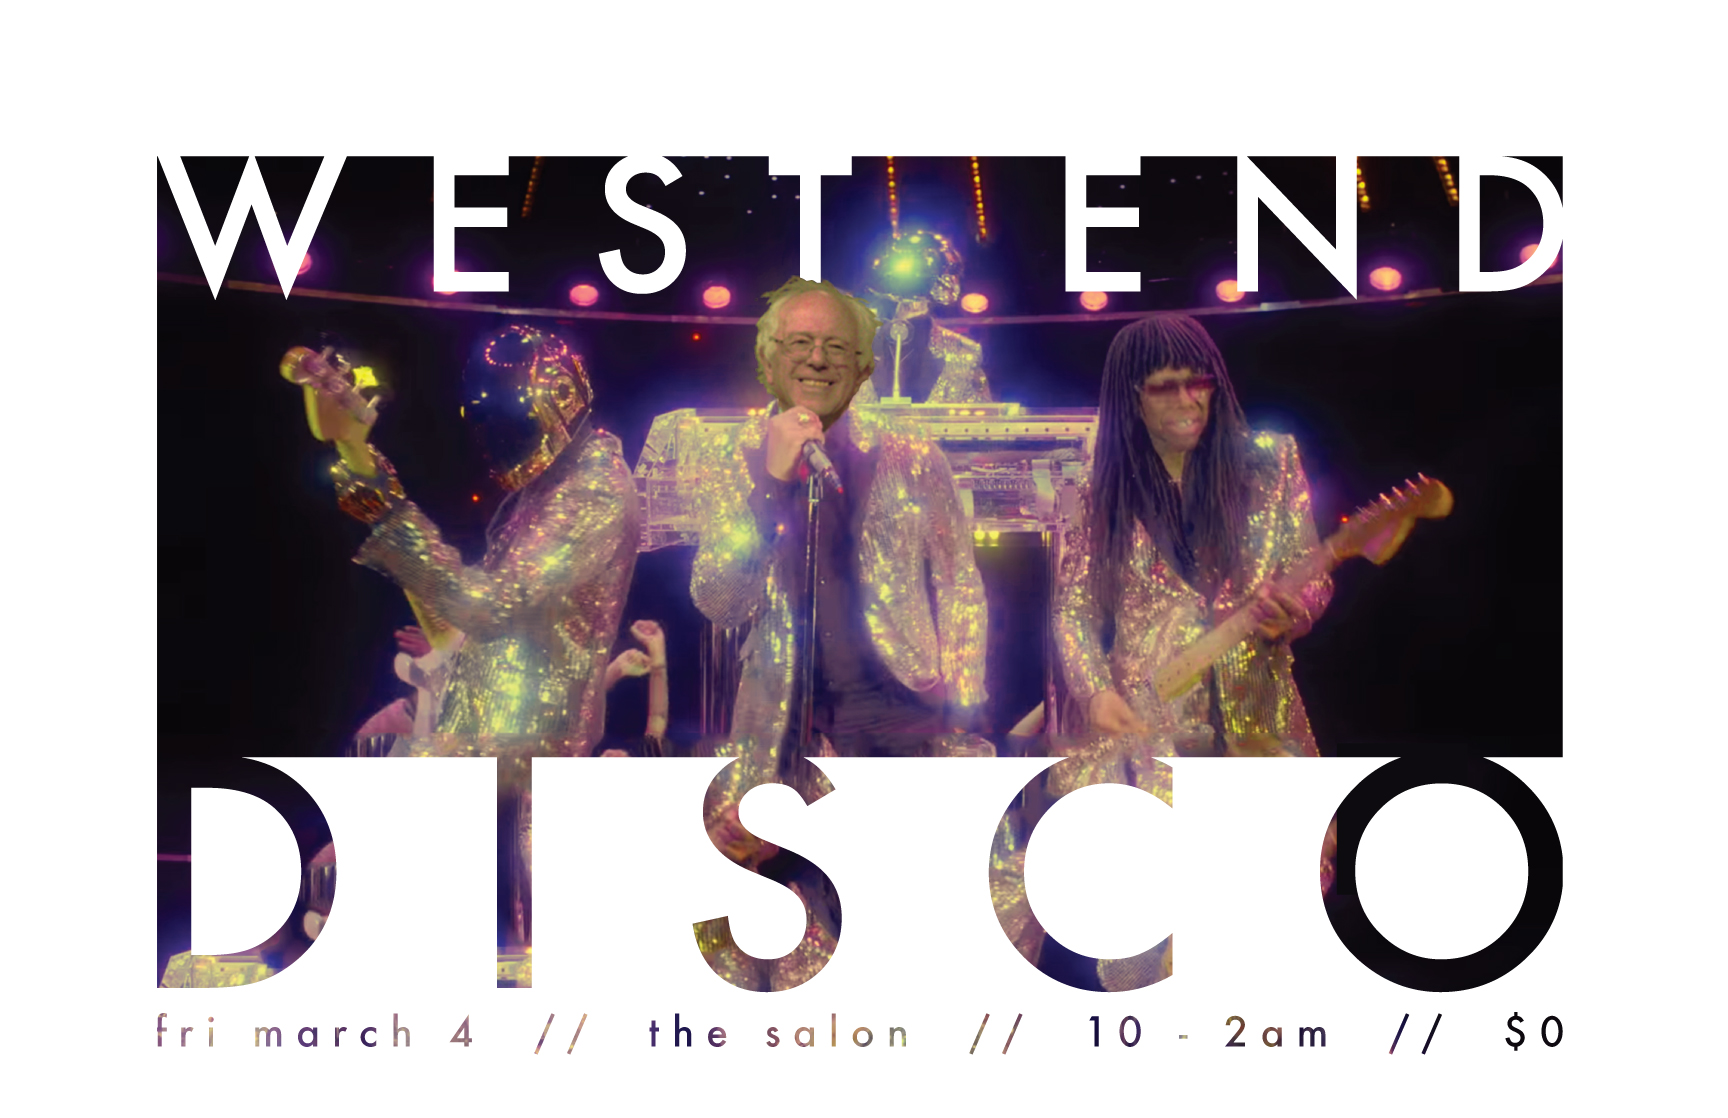 West-End-Disco-6.jpg